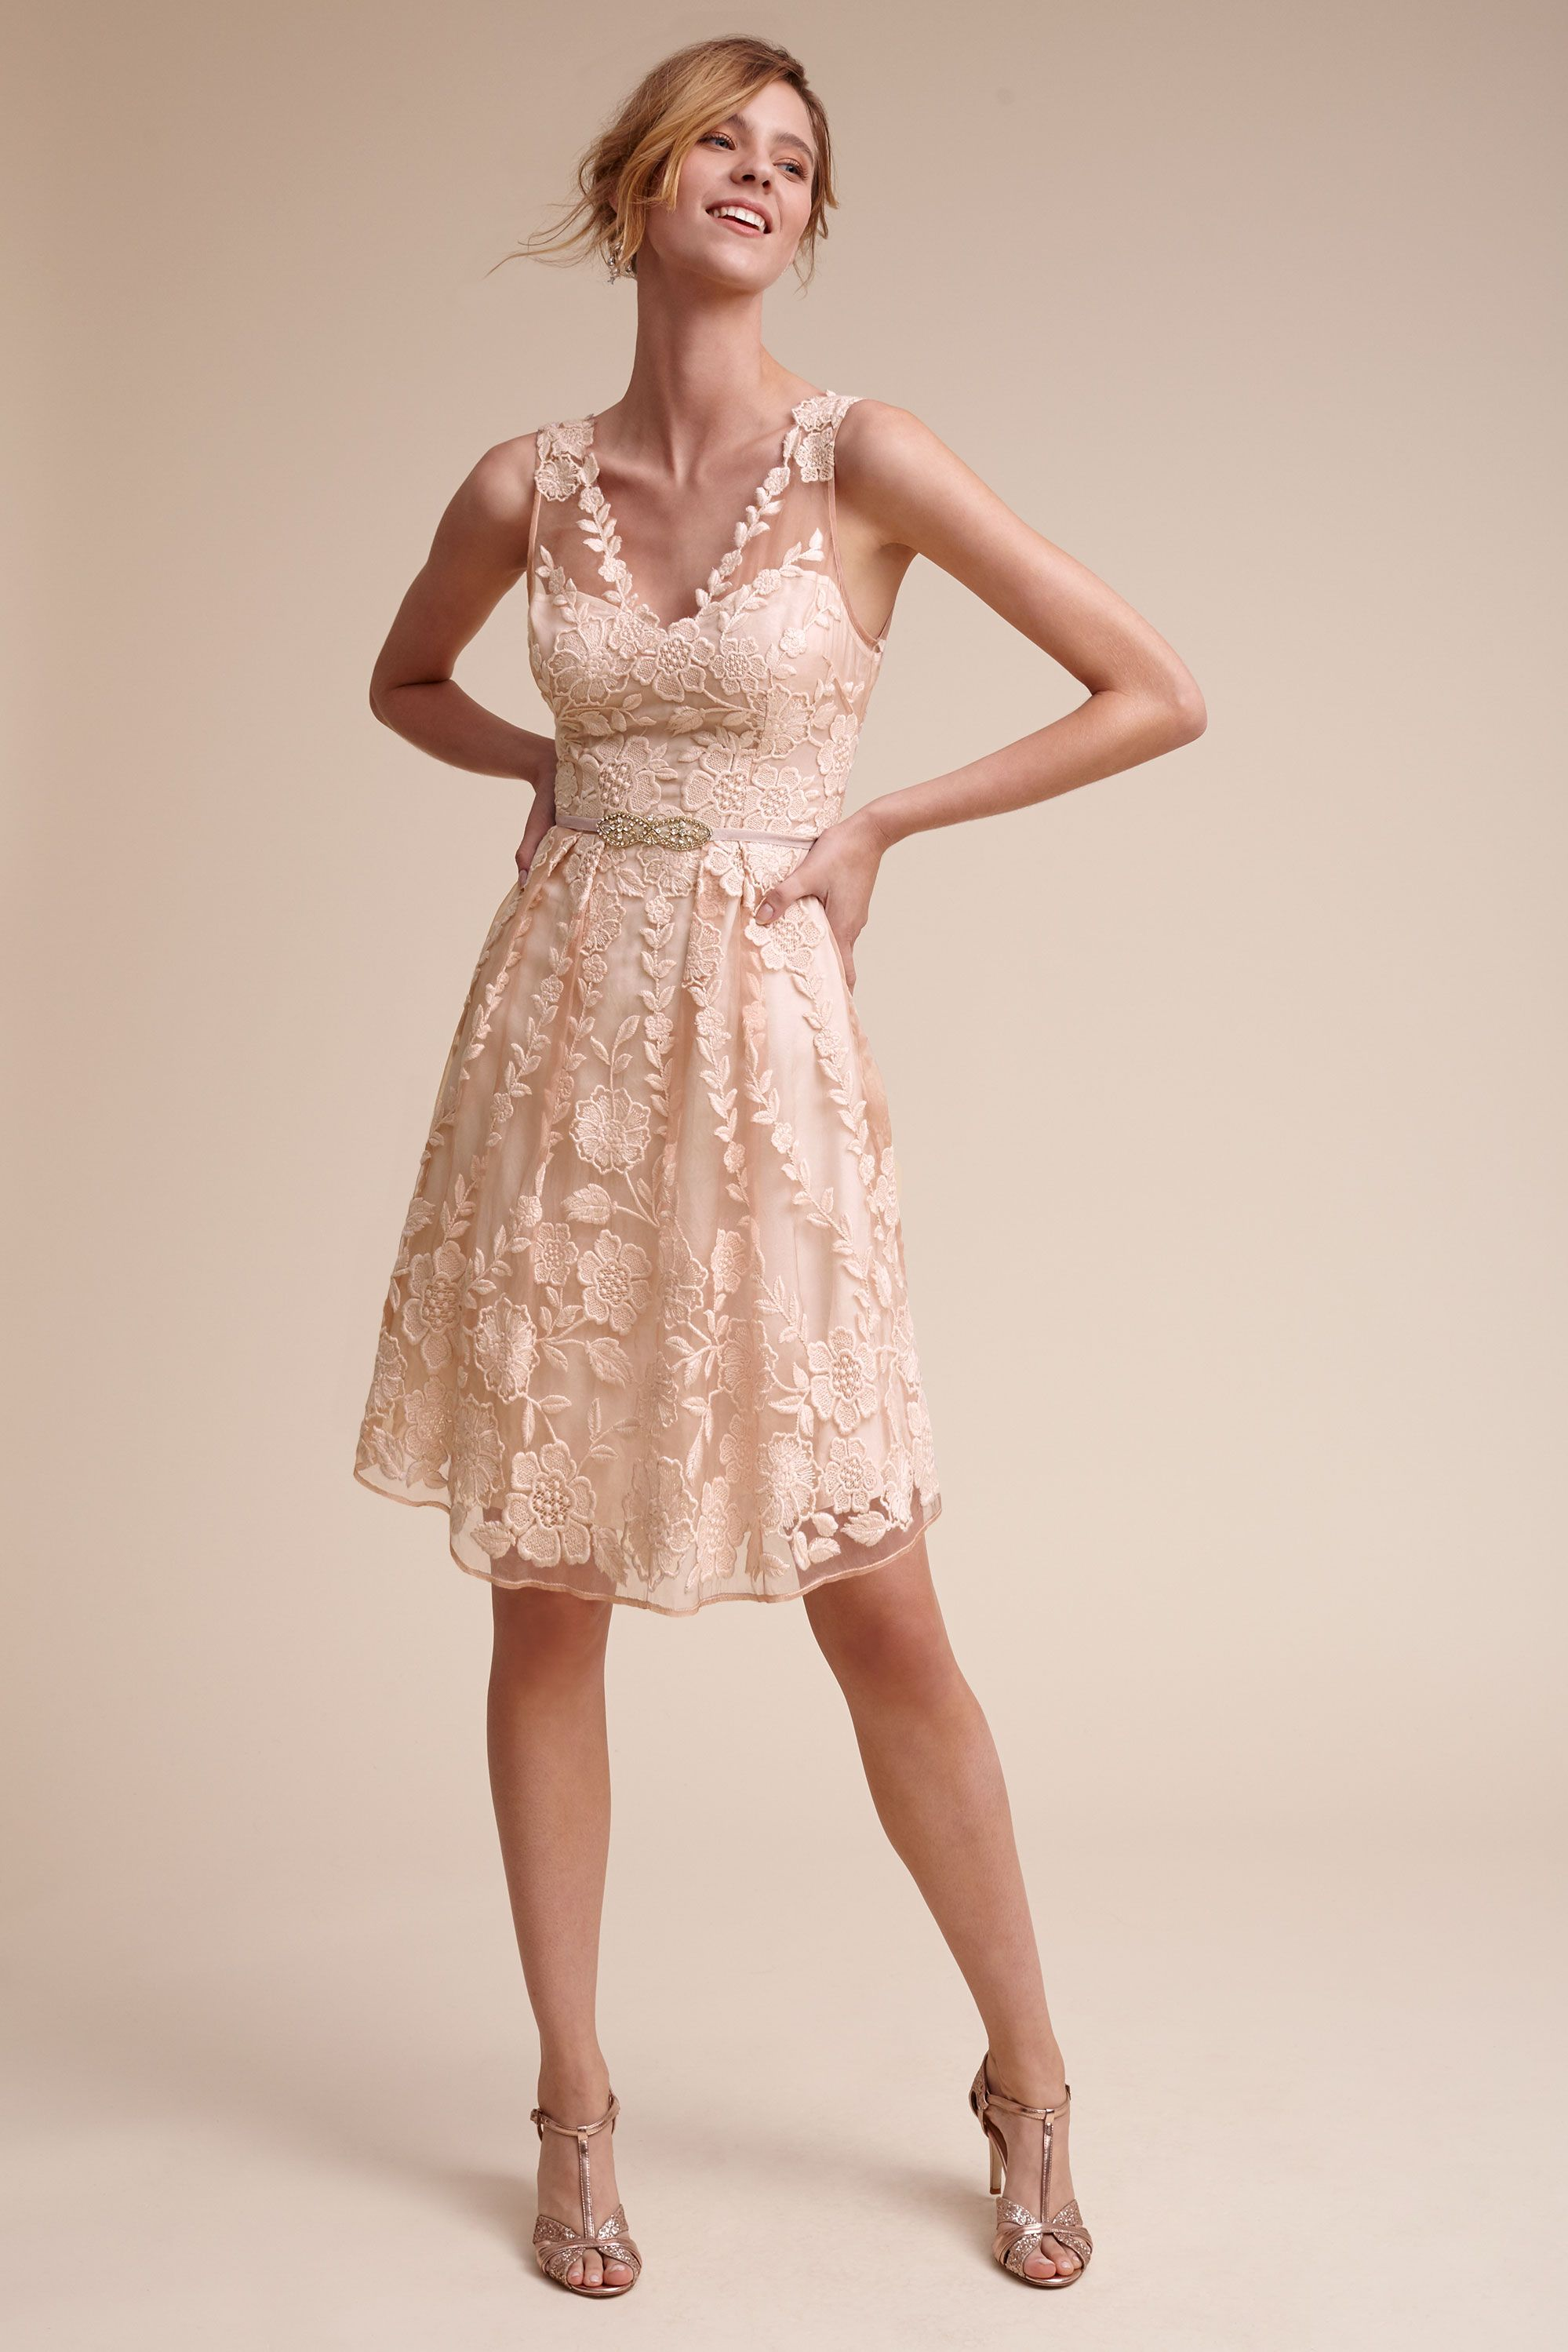 Party Dresses on Sale - Shop Event Dresses On Sale - BHLDN